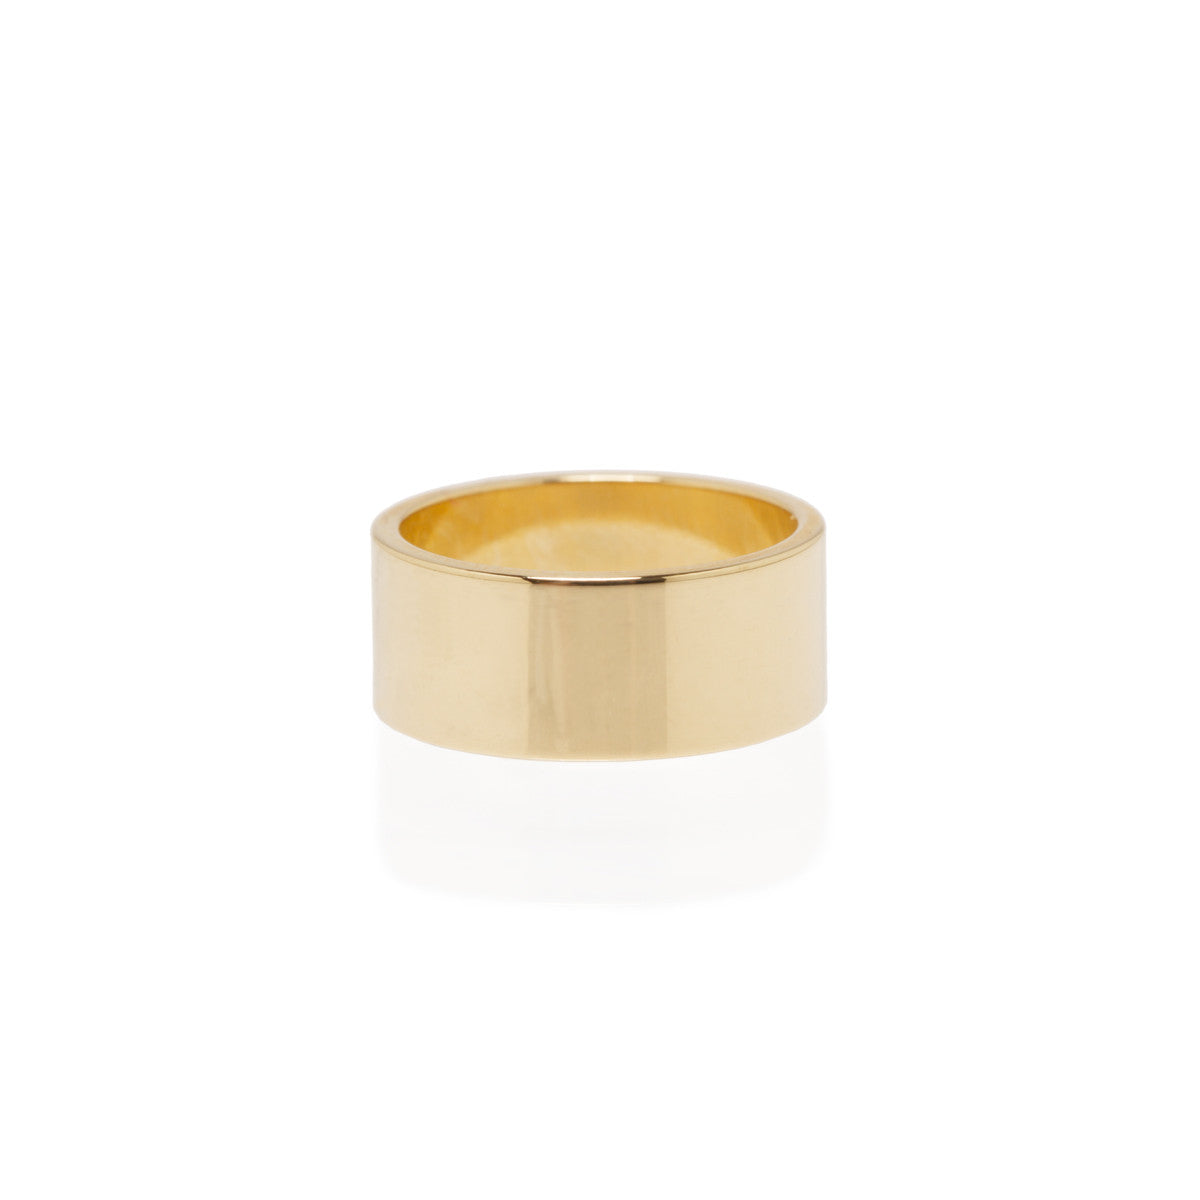 Zoë Chicco 14kt Yellow Gold 8mm Wide Flat Band Ring